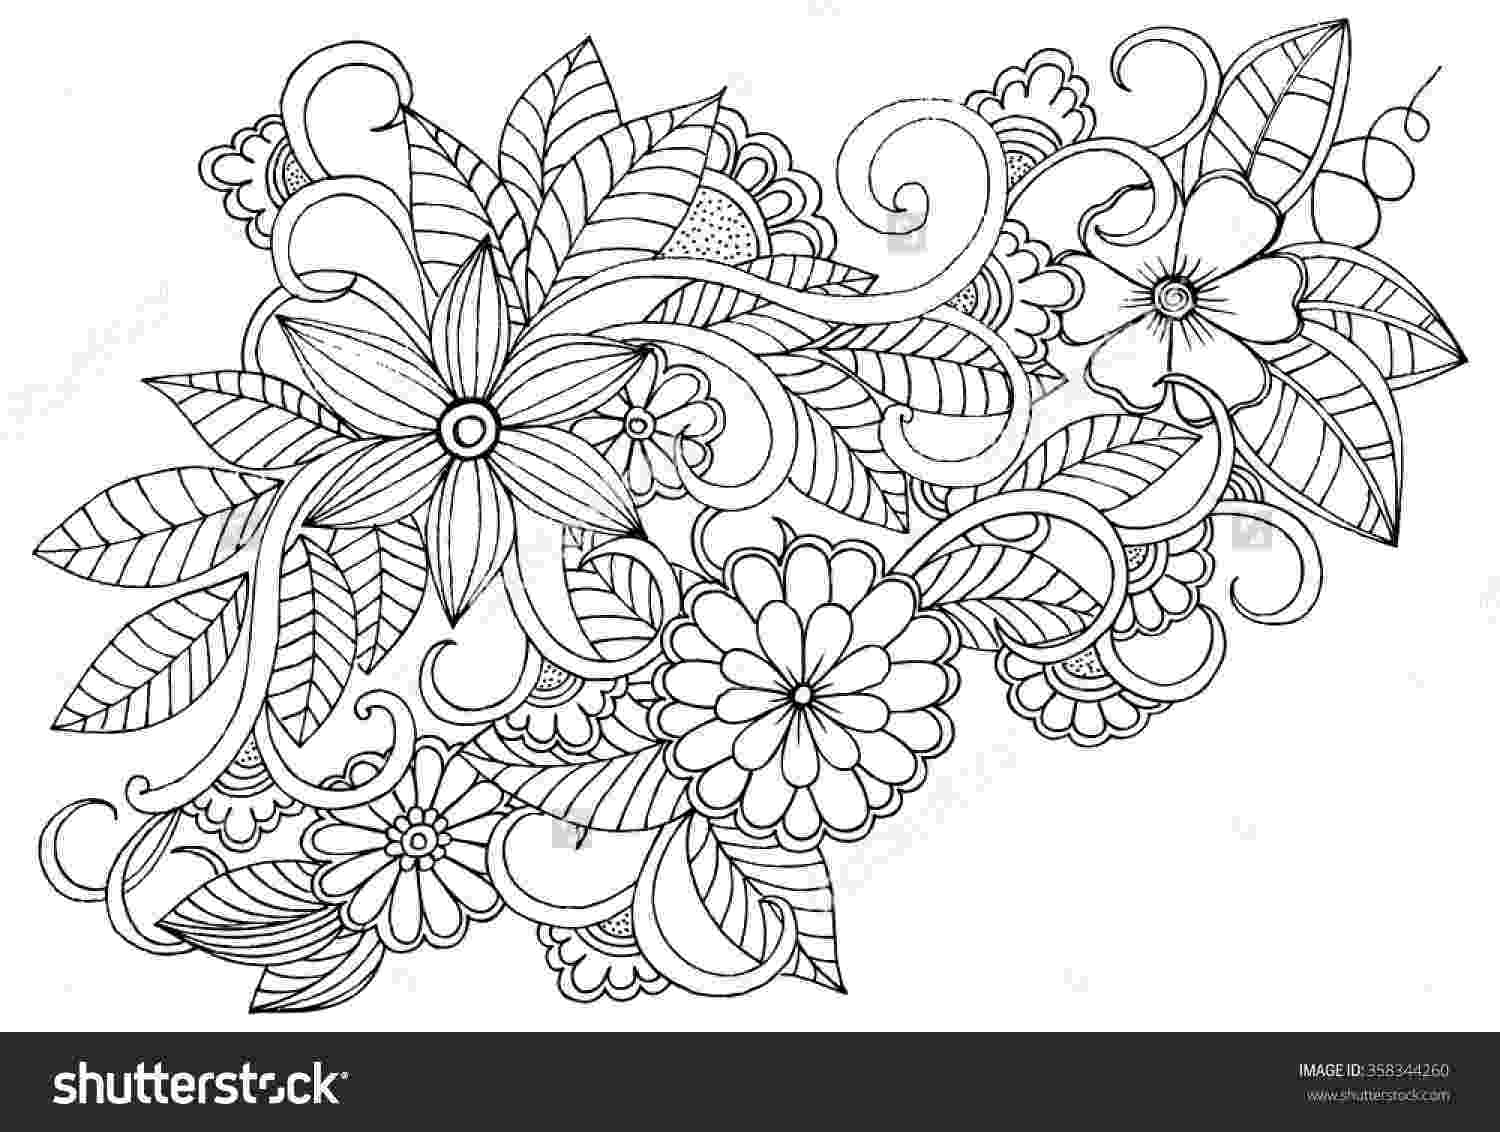 flower patterns coloring book top 20 free printable pattern coloring pages online barn coloring book patterns flower